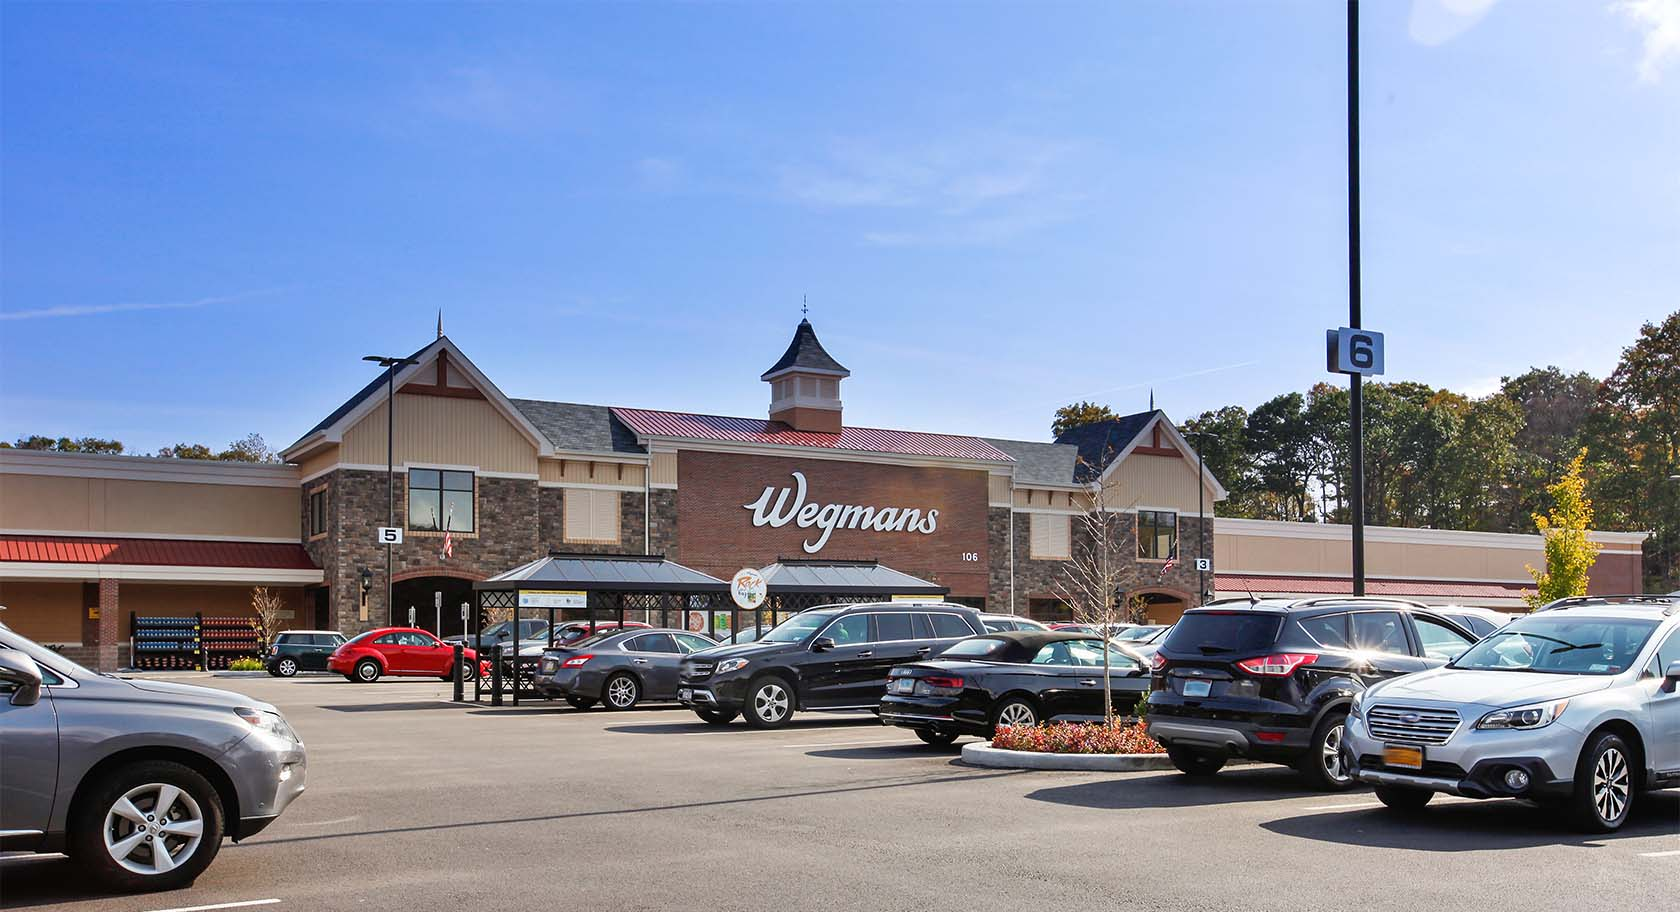 Wegman's flagship store is a two-minute walk down the road from Carraway luxury apartment homes.